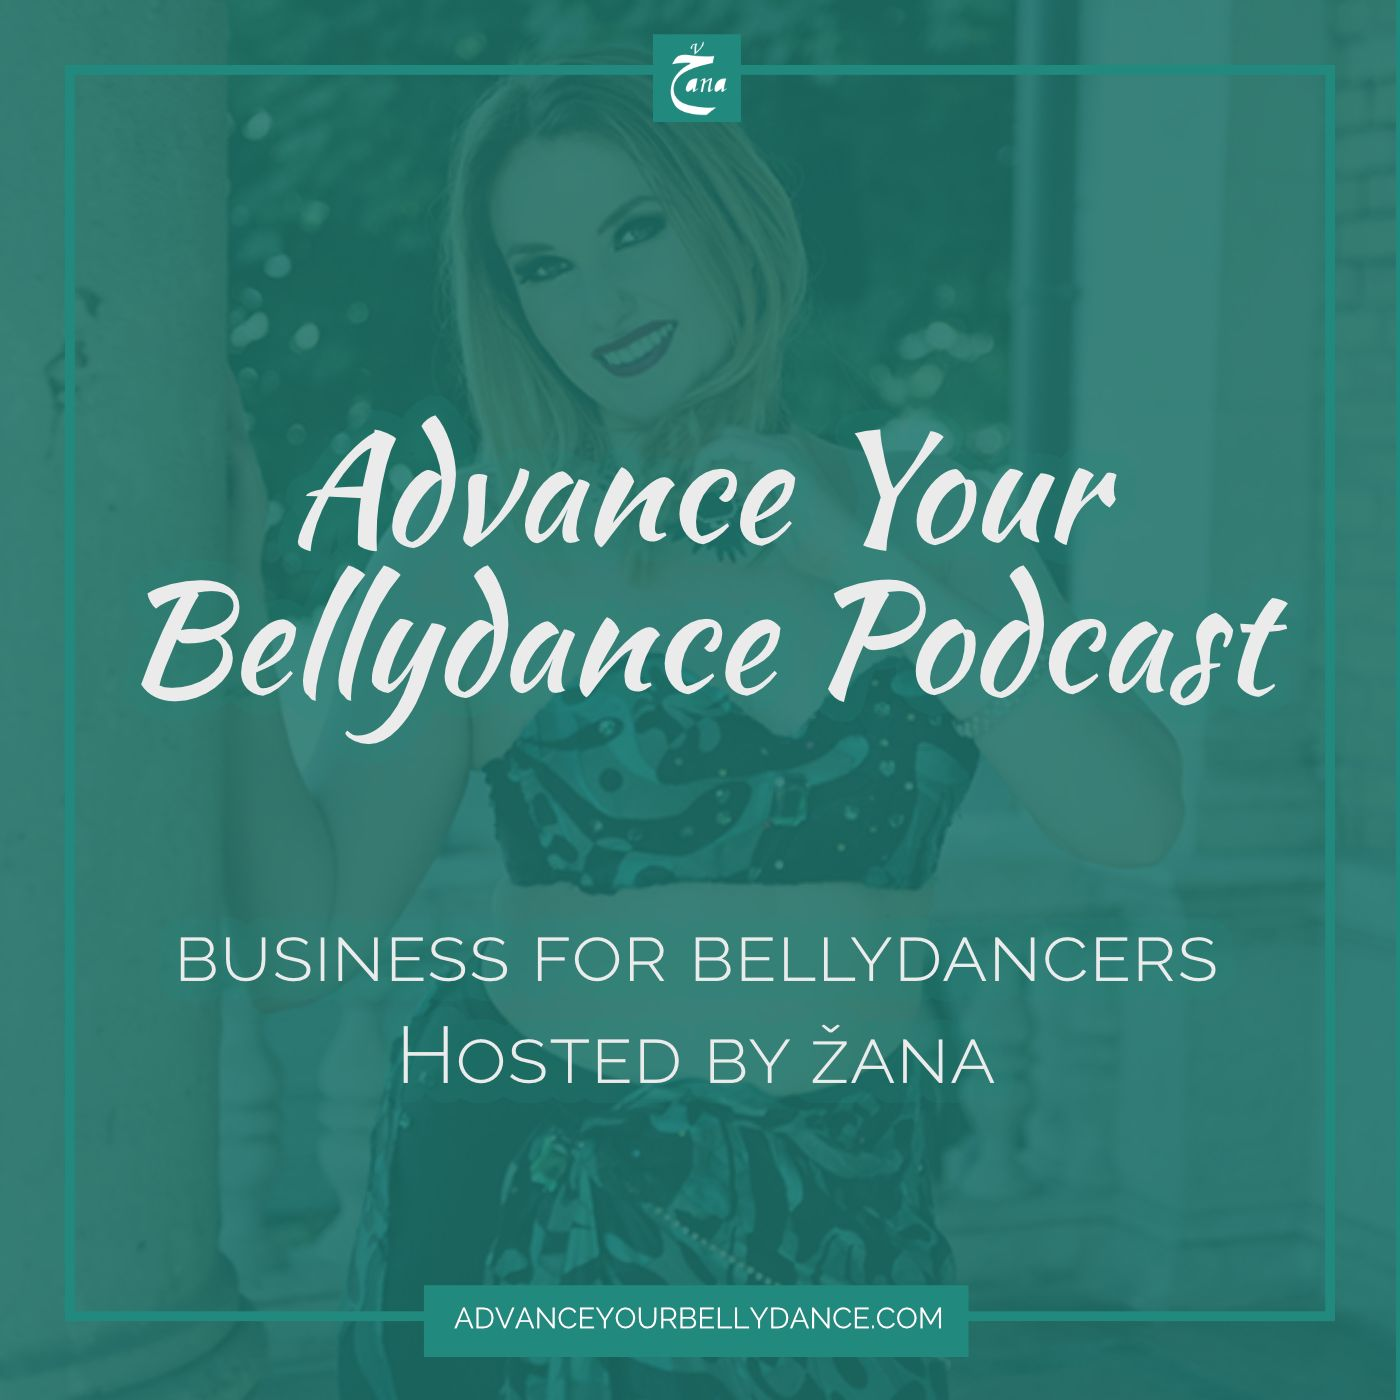 A highlight from Episode 178: 5 Ways To Optimize Your Home Page